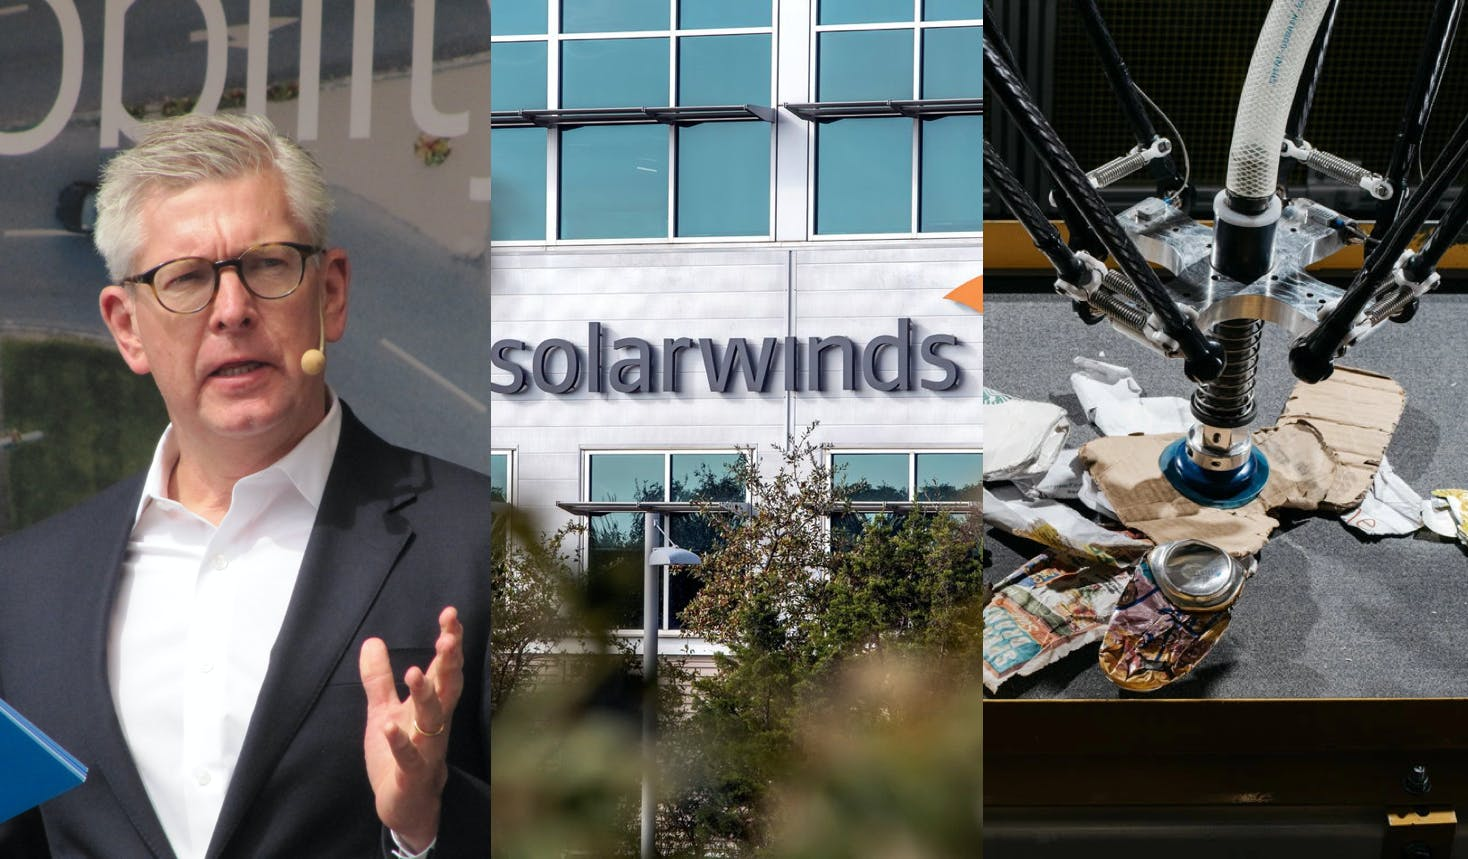 Ericsson CEO lobbies Swedish minister over Huawei ban—The more learned about the SolarWinds hack, the worse it looks—AMP Robotics raises $55 million for AI that picks and sorts recyclables